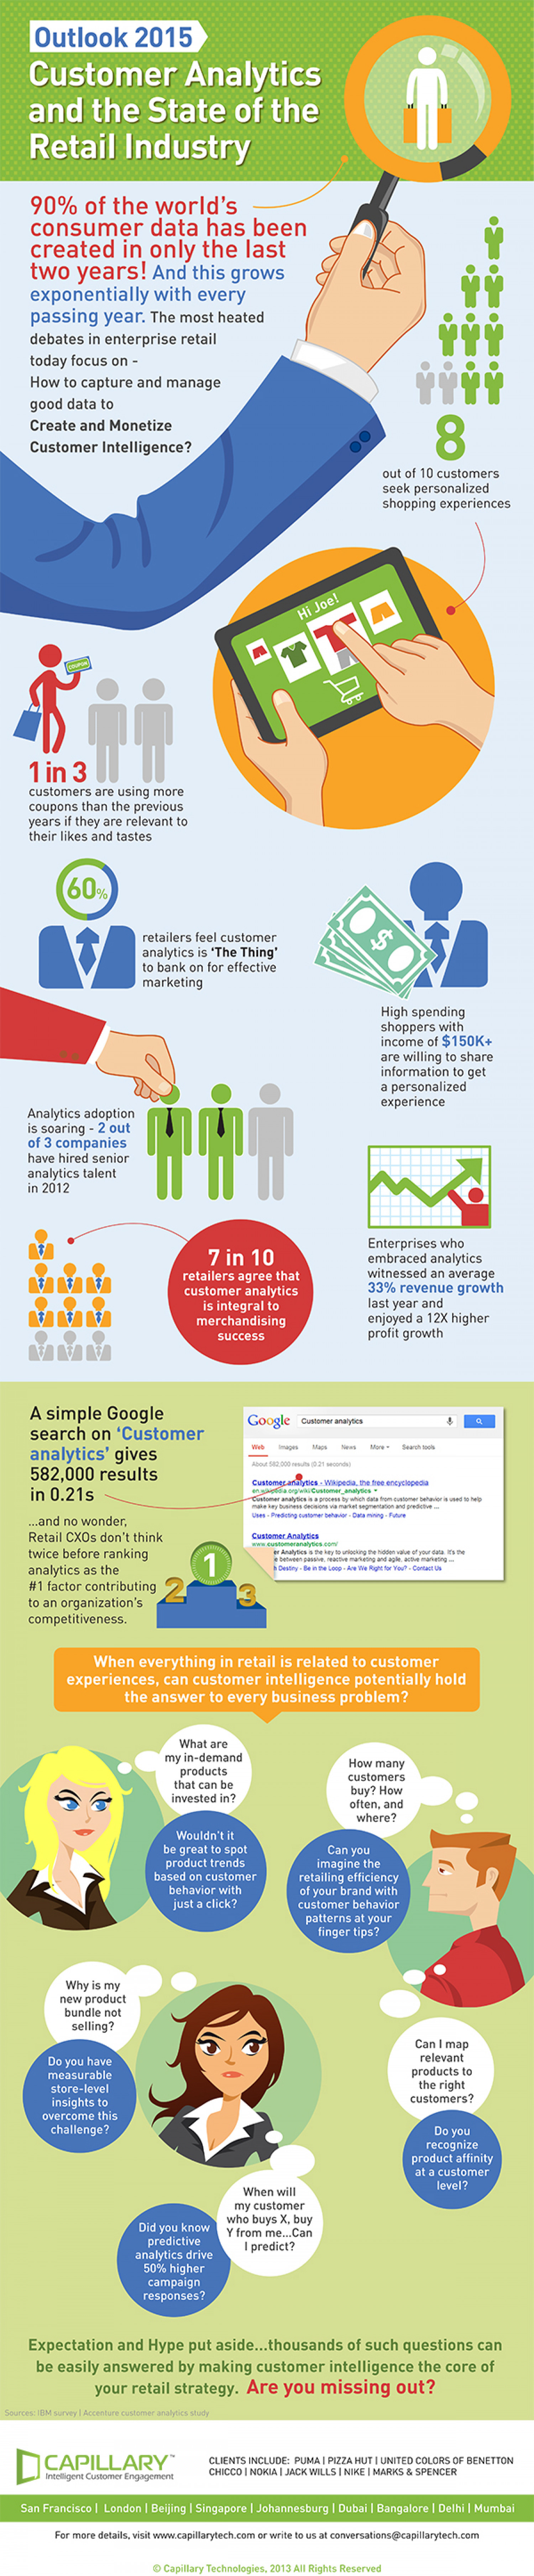 Customer Analytics & the State of Retail Industry Infographic